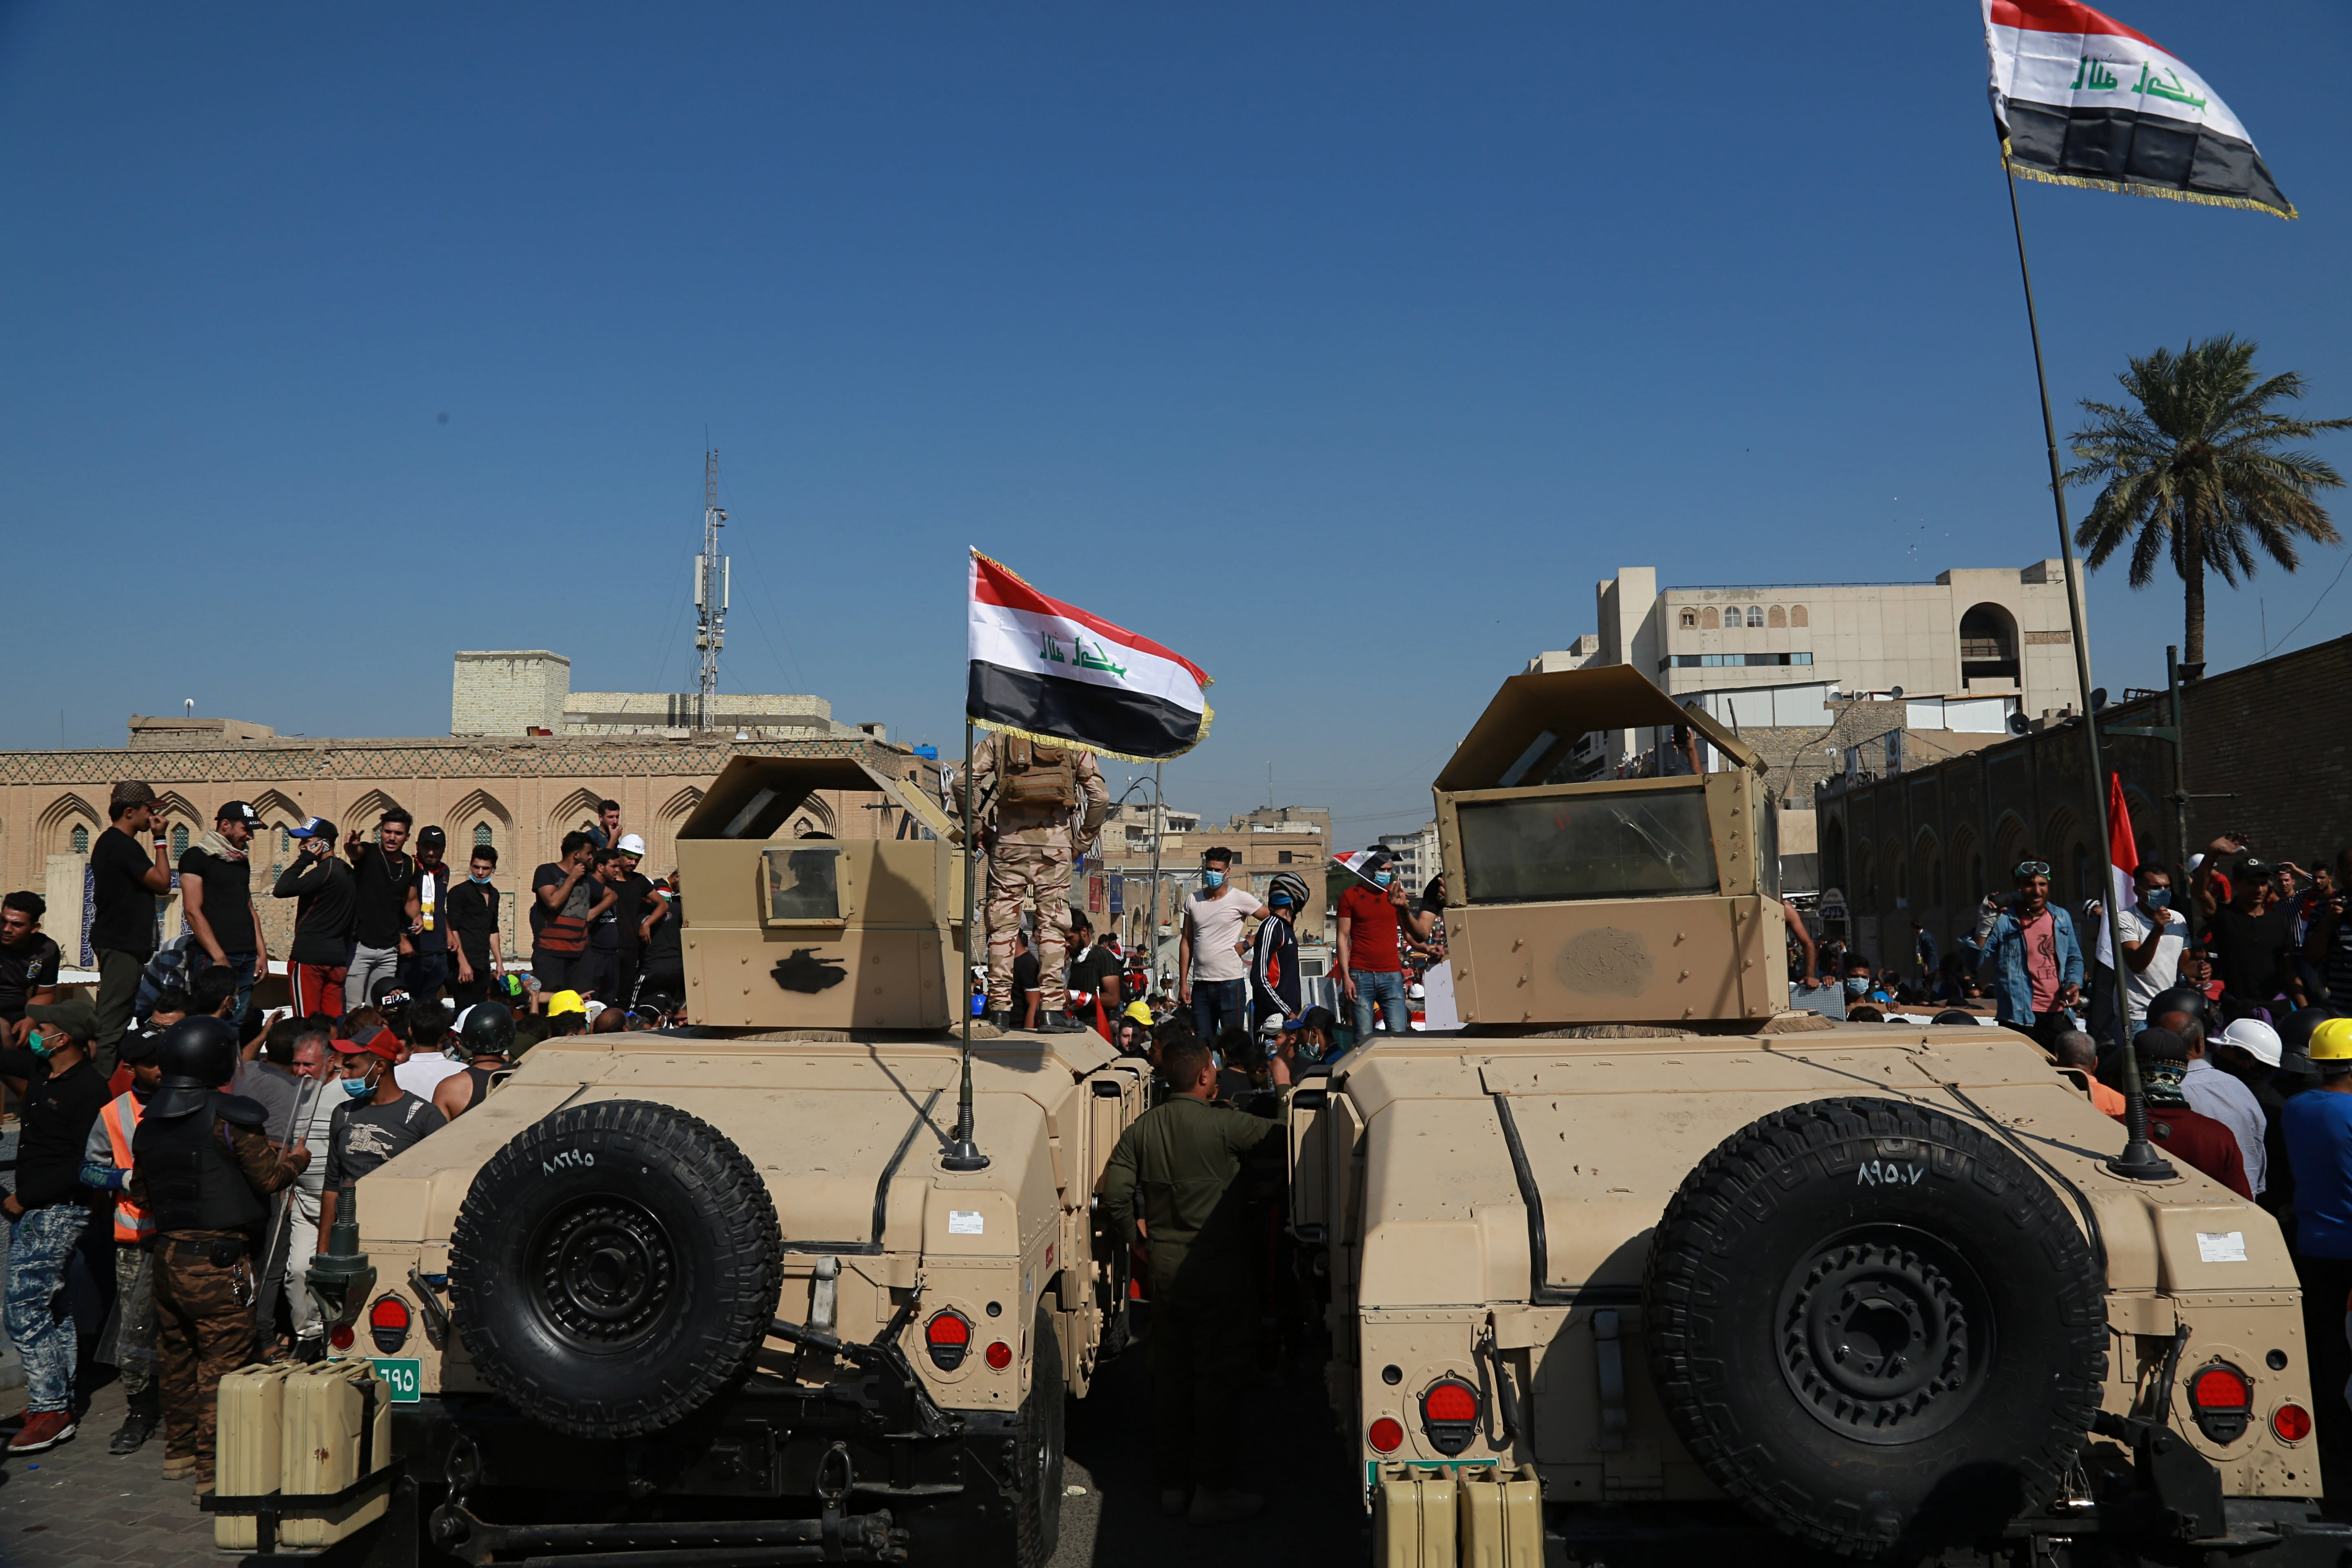 Army soldiers try to prevent anti-government protesters from crossing the al- Shuhada (Martyrs) bridge in central Baghdad, Iraq, Wednesday, Nov. 6, 2019. (AP Photo/Khalid Mohammed)